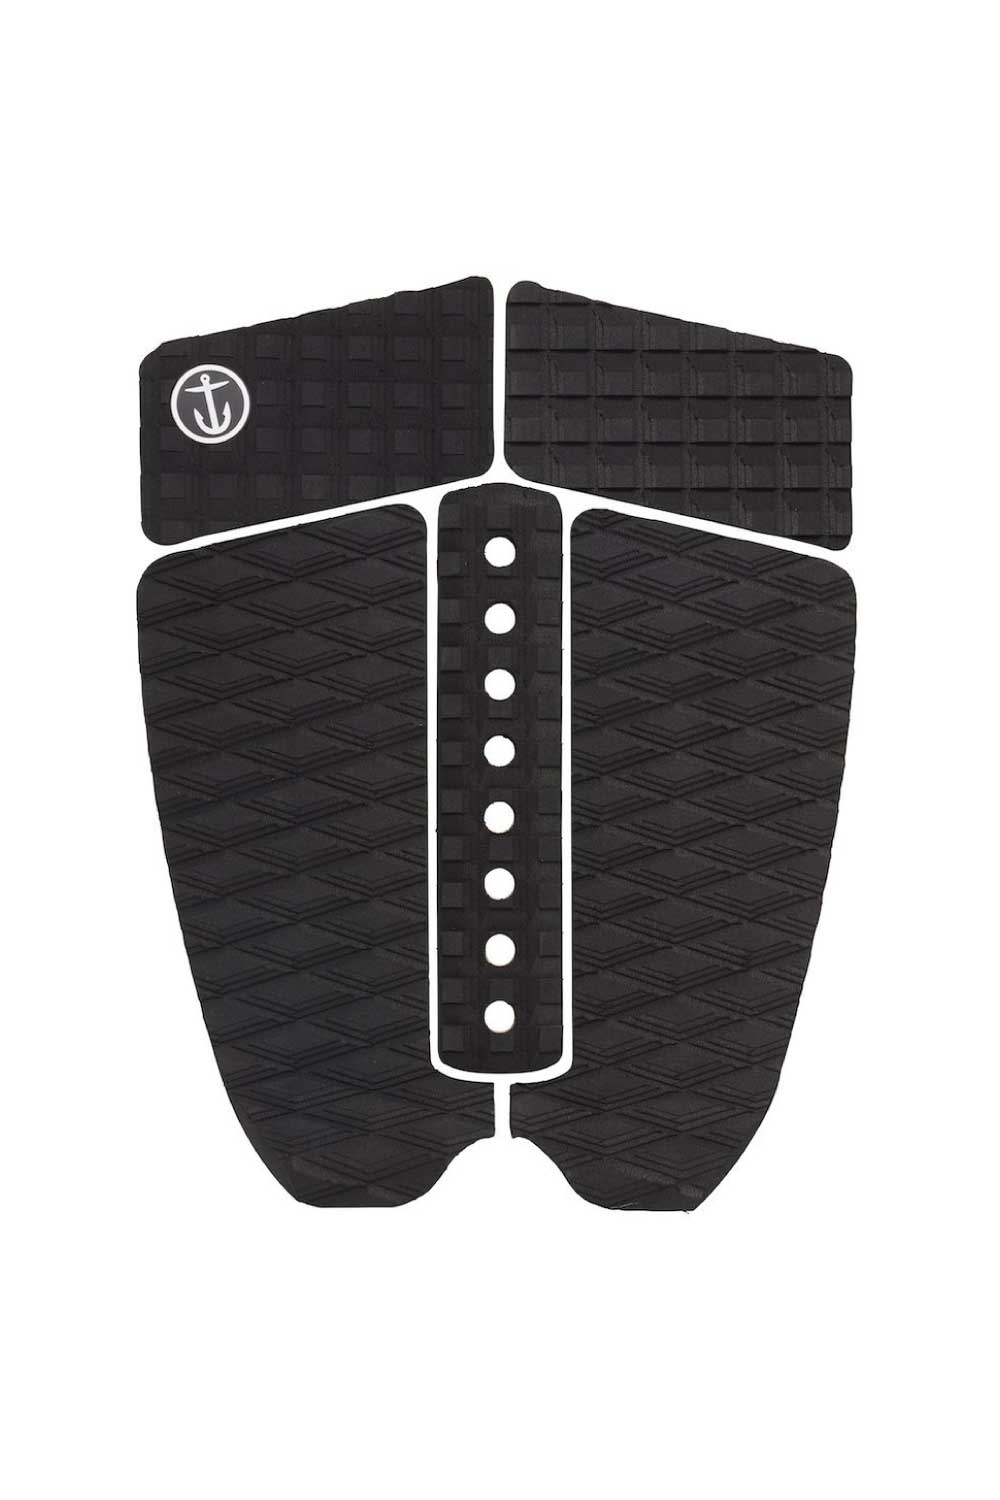 Captain Fin Co Matt Archbold (Archy) Traction Pad